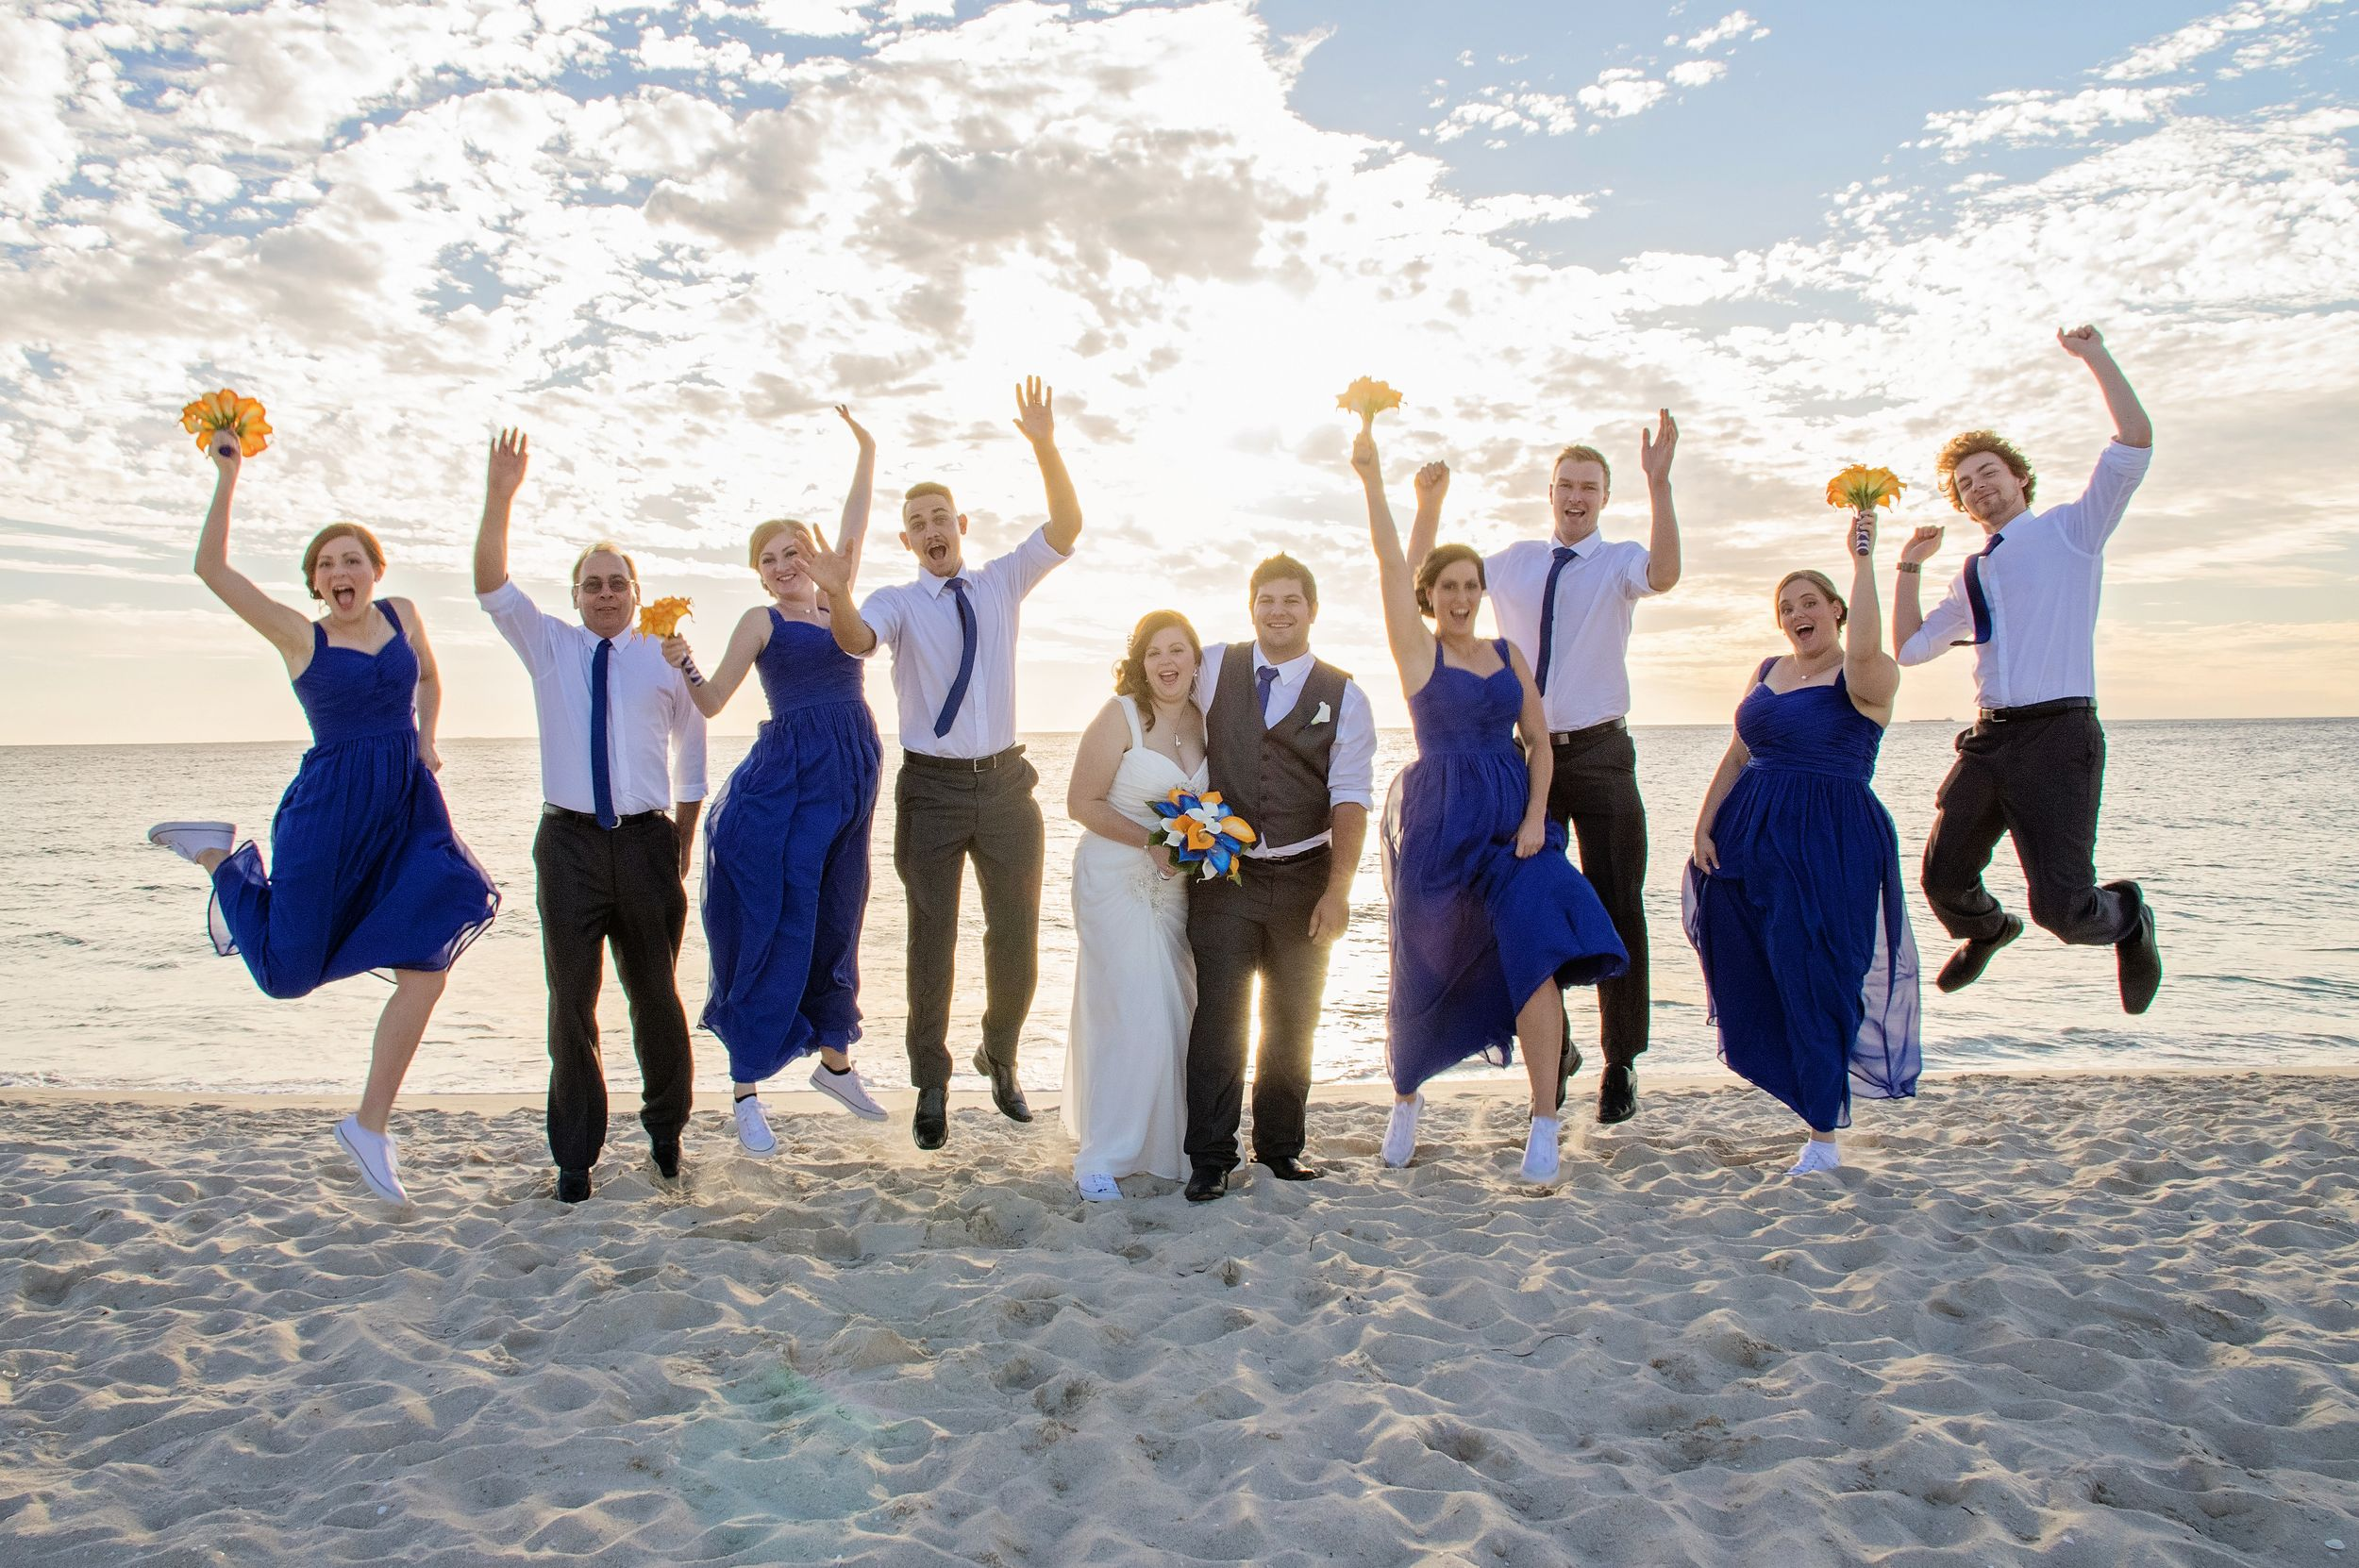 fun photo of bridal party jumping in the air at the beach